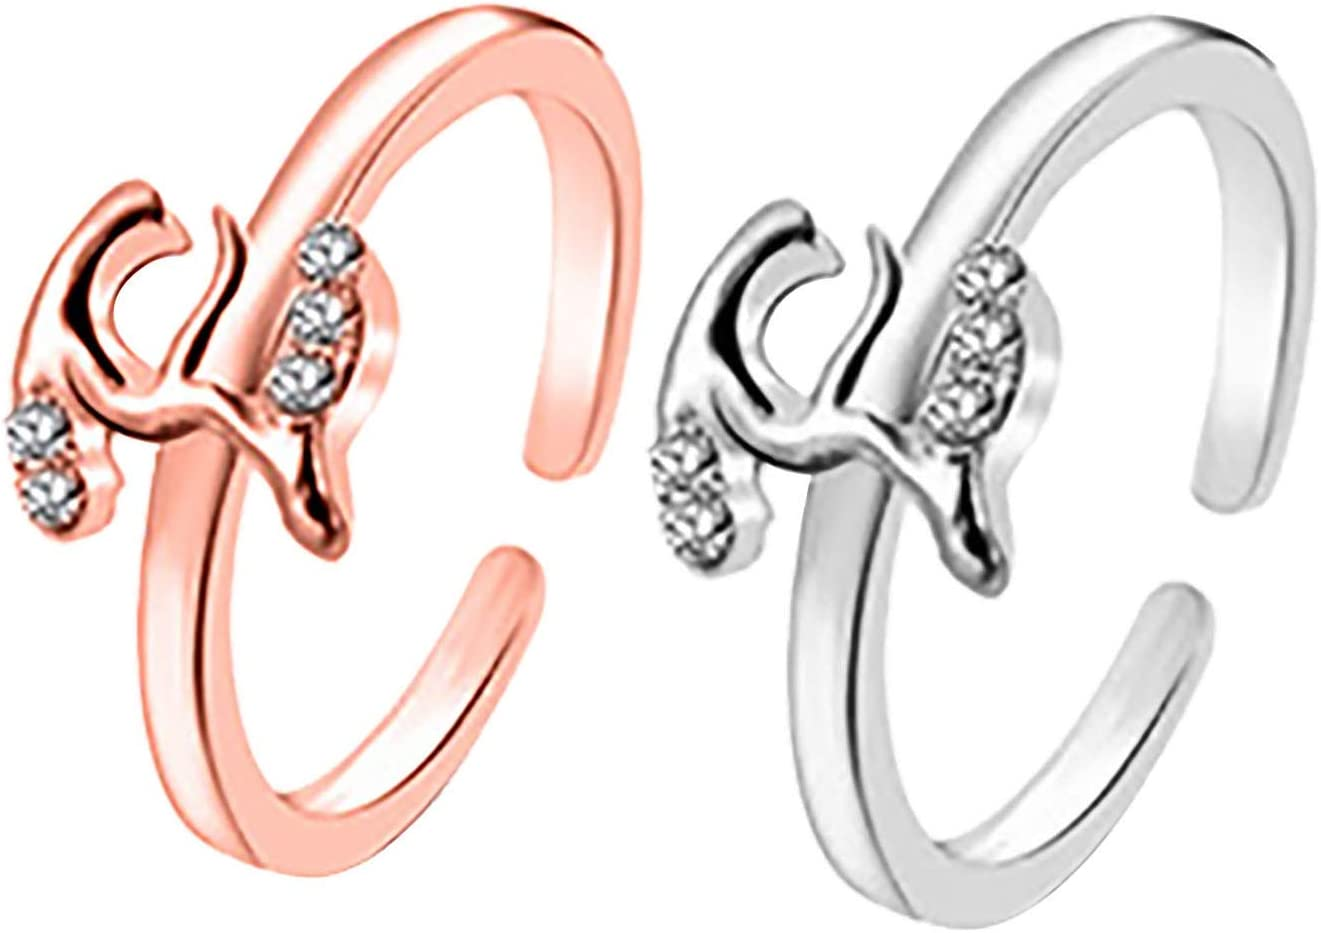 1PC Personalized Initial Letter Ring Open Ring Women Statement Rings Party Jewelry A-Z 26 Letters Initial Name Rings for Women Men,Diamond or Twisted Style